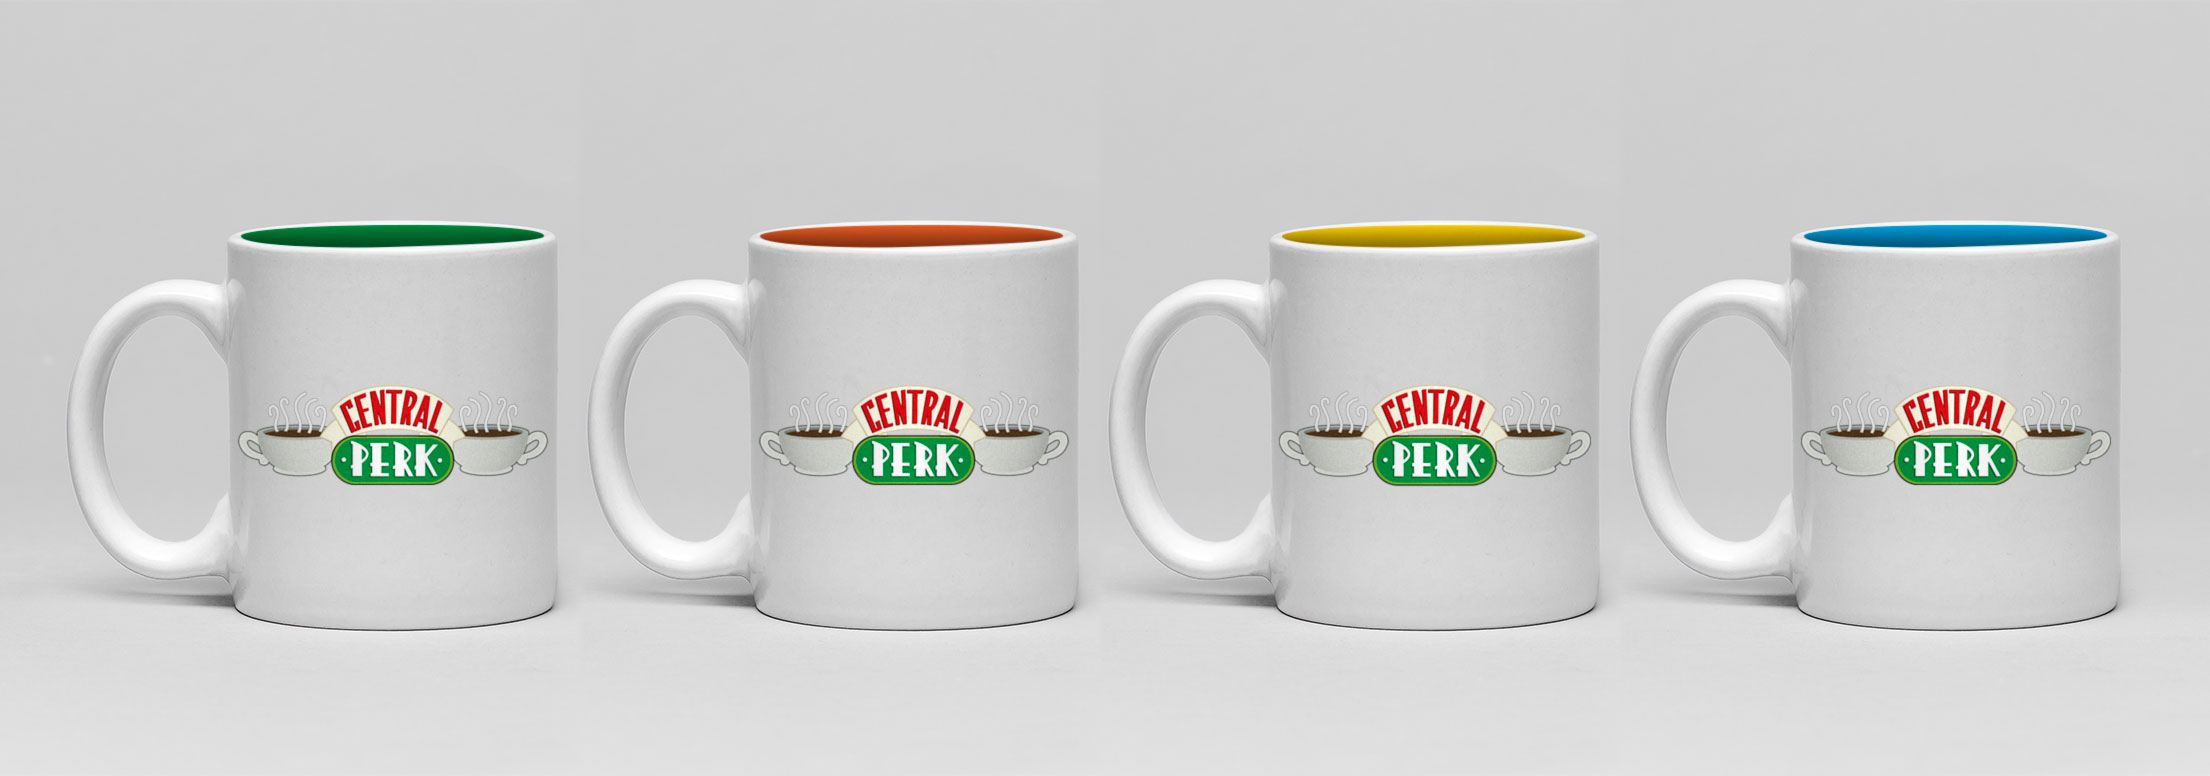 Friends pack 4 tasses Espresso Central Perk